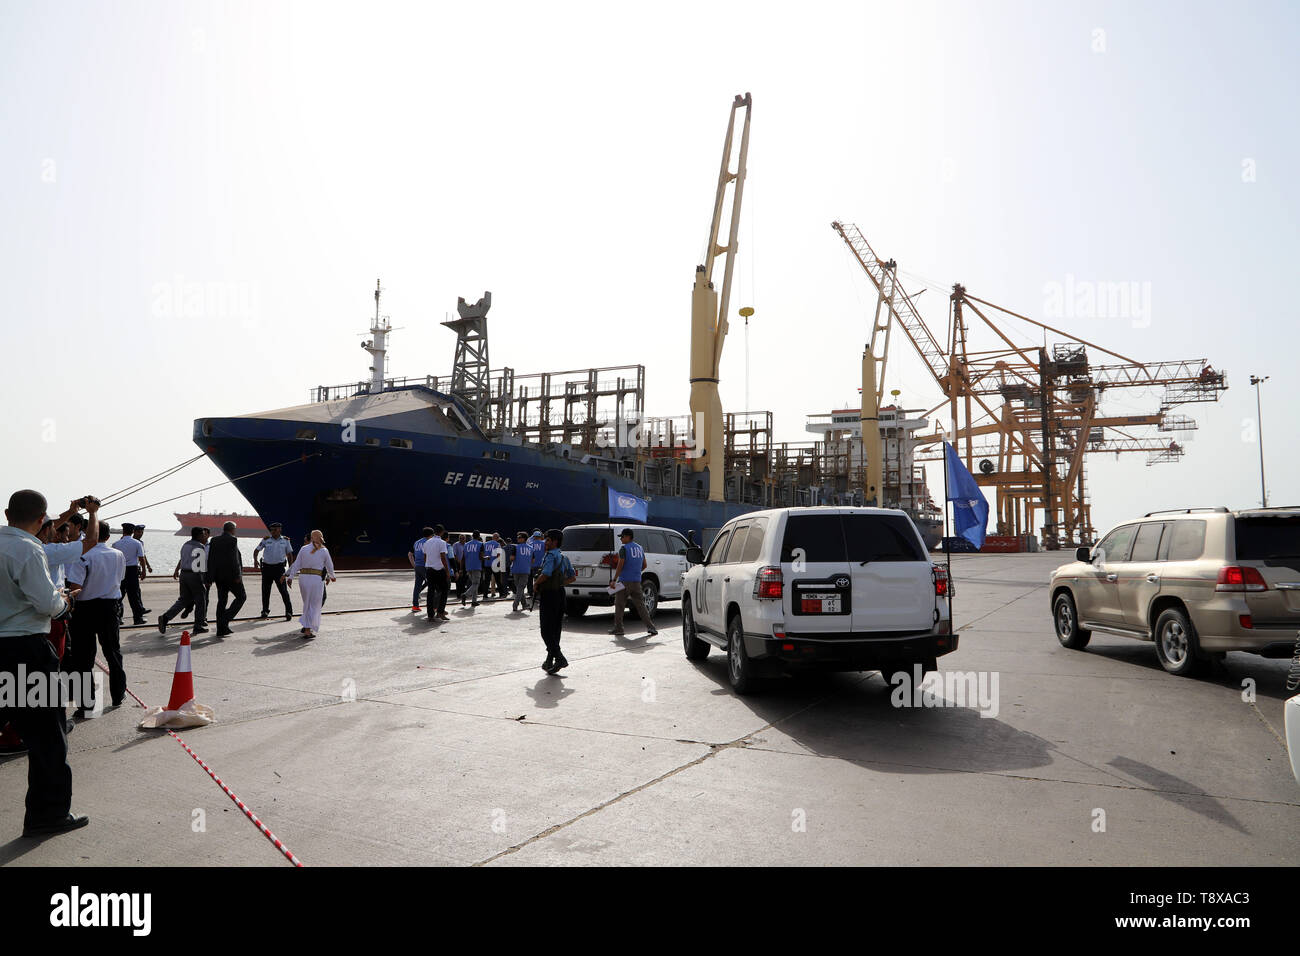 (190515) --  HODEIDAH, May 15, 2019 (Xinhua) -- UN team members arrive at the Hodeidah port for a press conference in Hodeidah, Yemen, on May 14, 2019. The UN monitoring mission in Yemen on Tuesday welcomed the Houthi rebels' handover of the security of Hodeidah ports to the coast guards. (Xinhua) - Stock Image